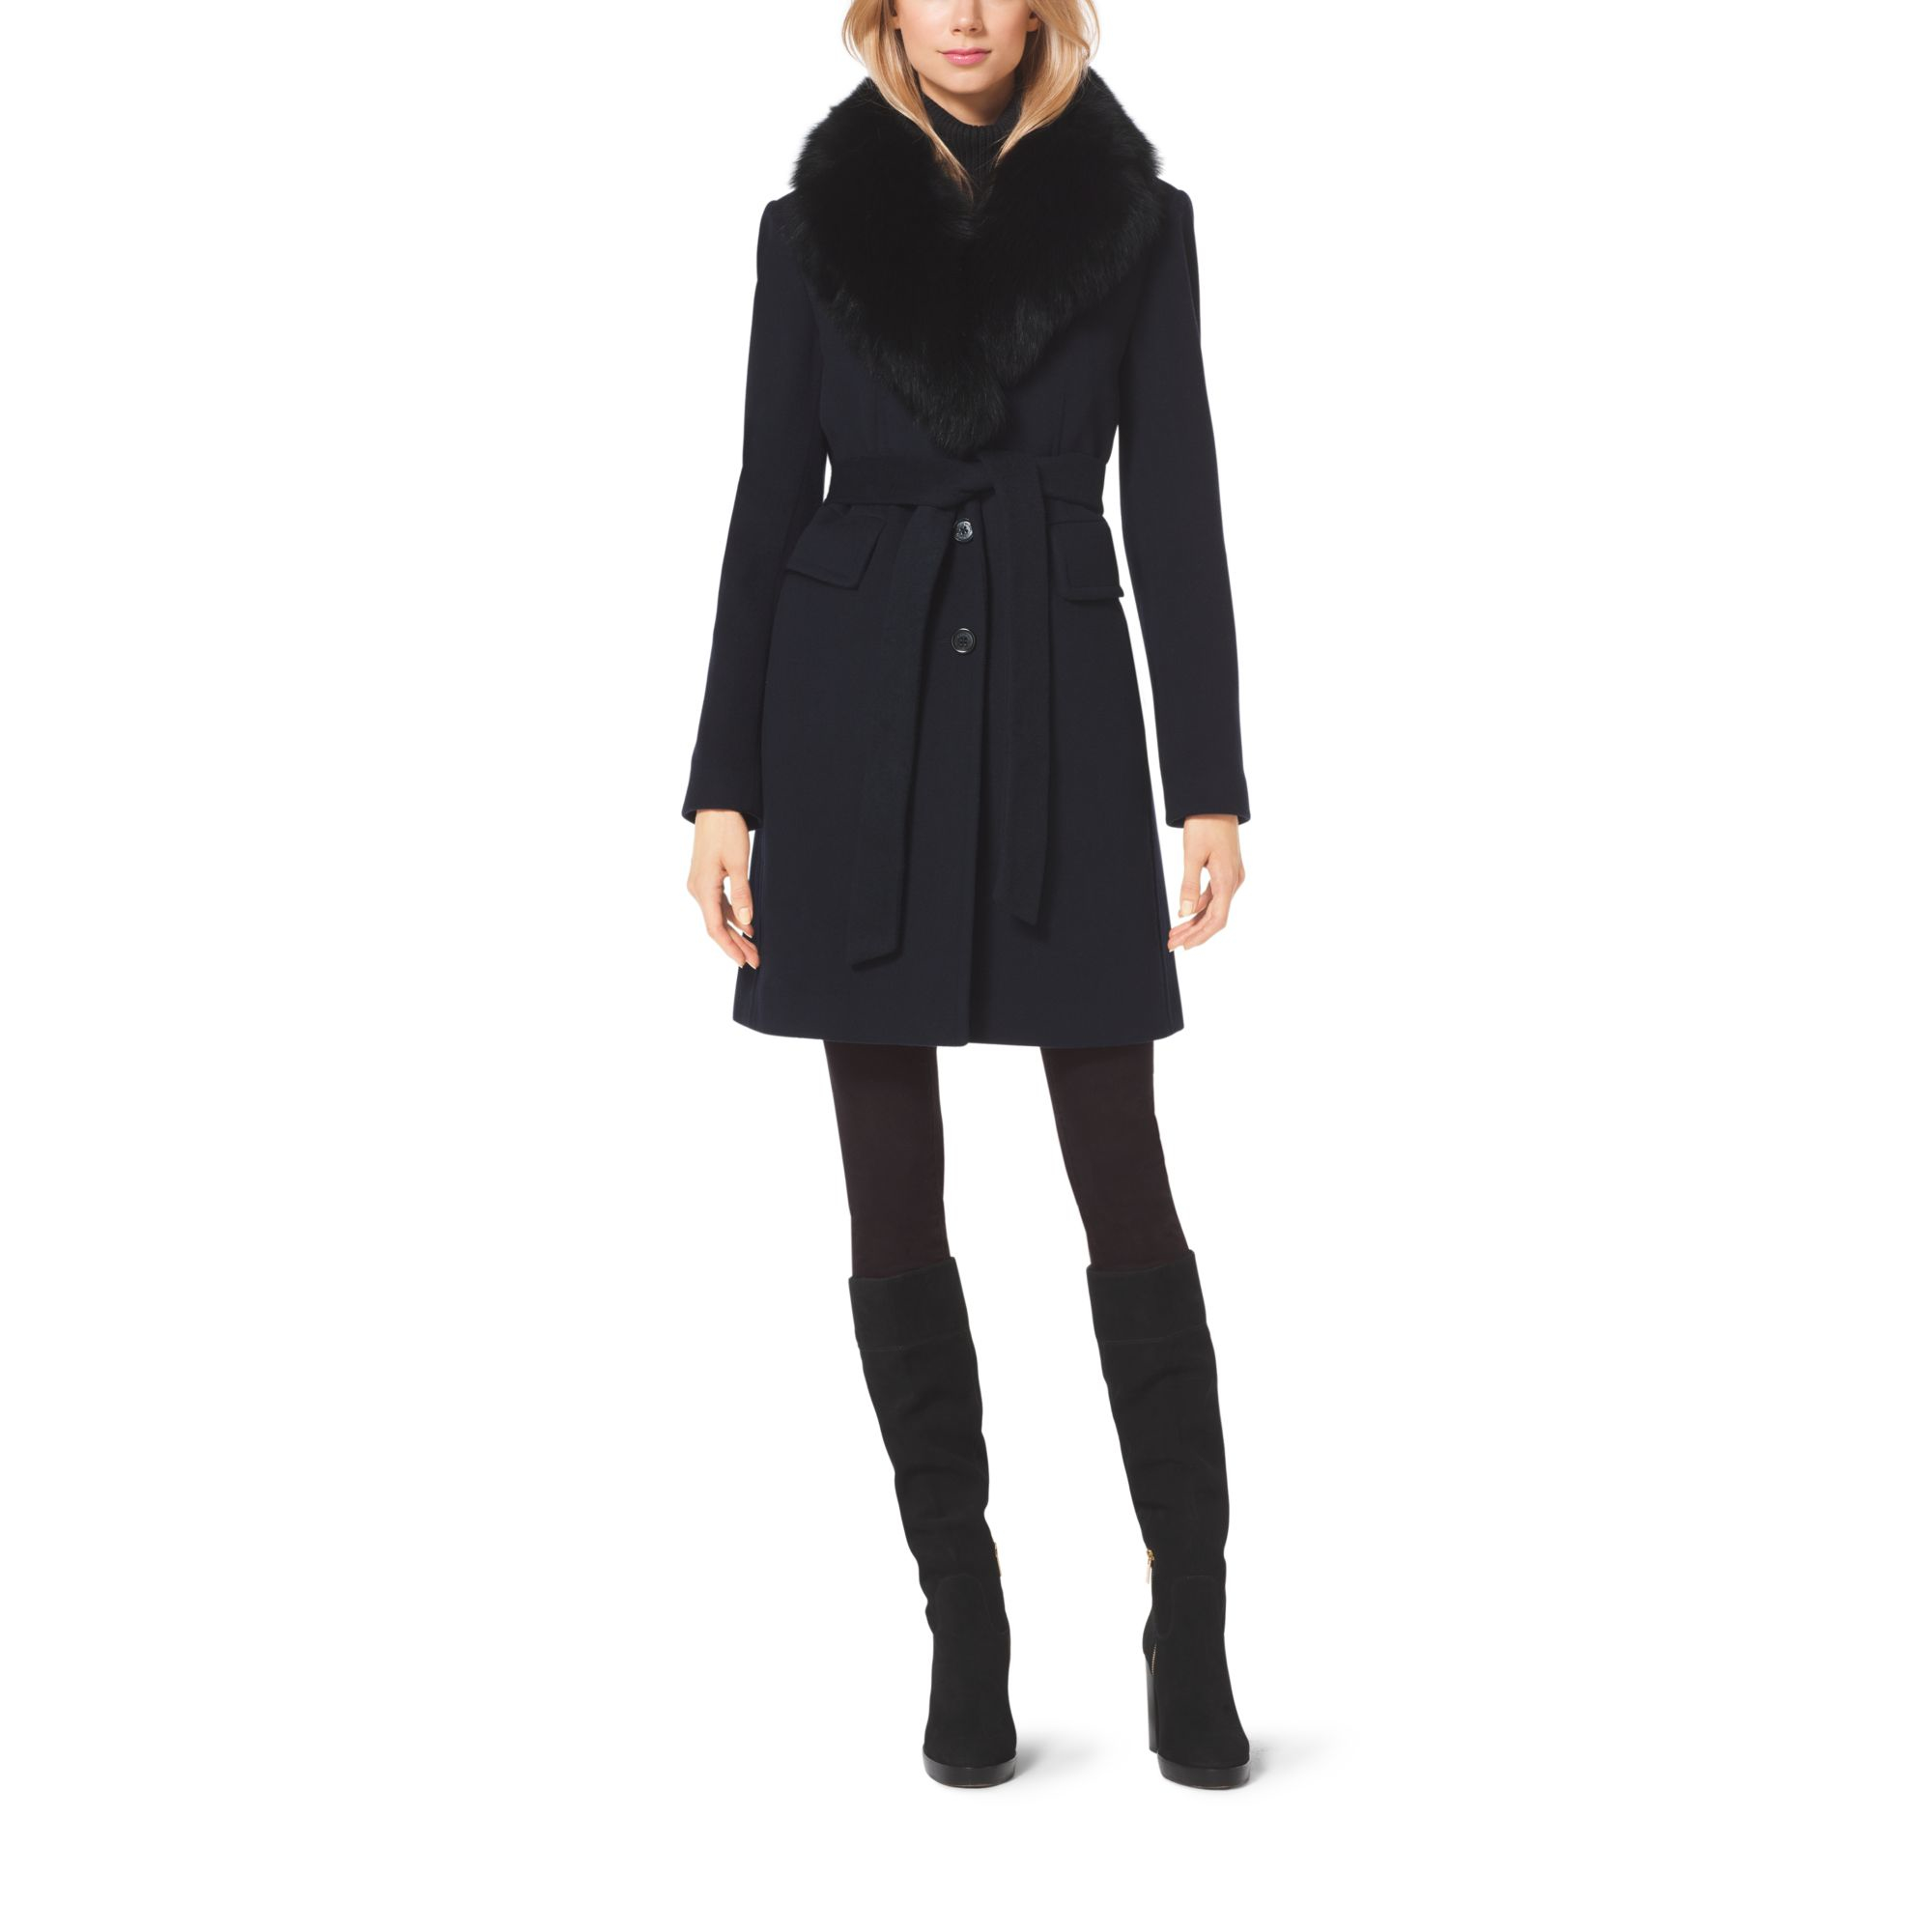 Michael kors Wool-blend Fur-collar Coat in Blue | Lyst